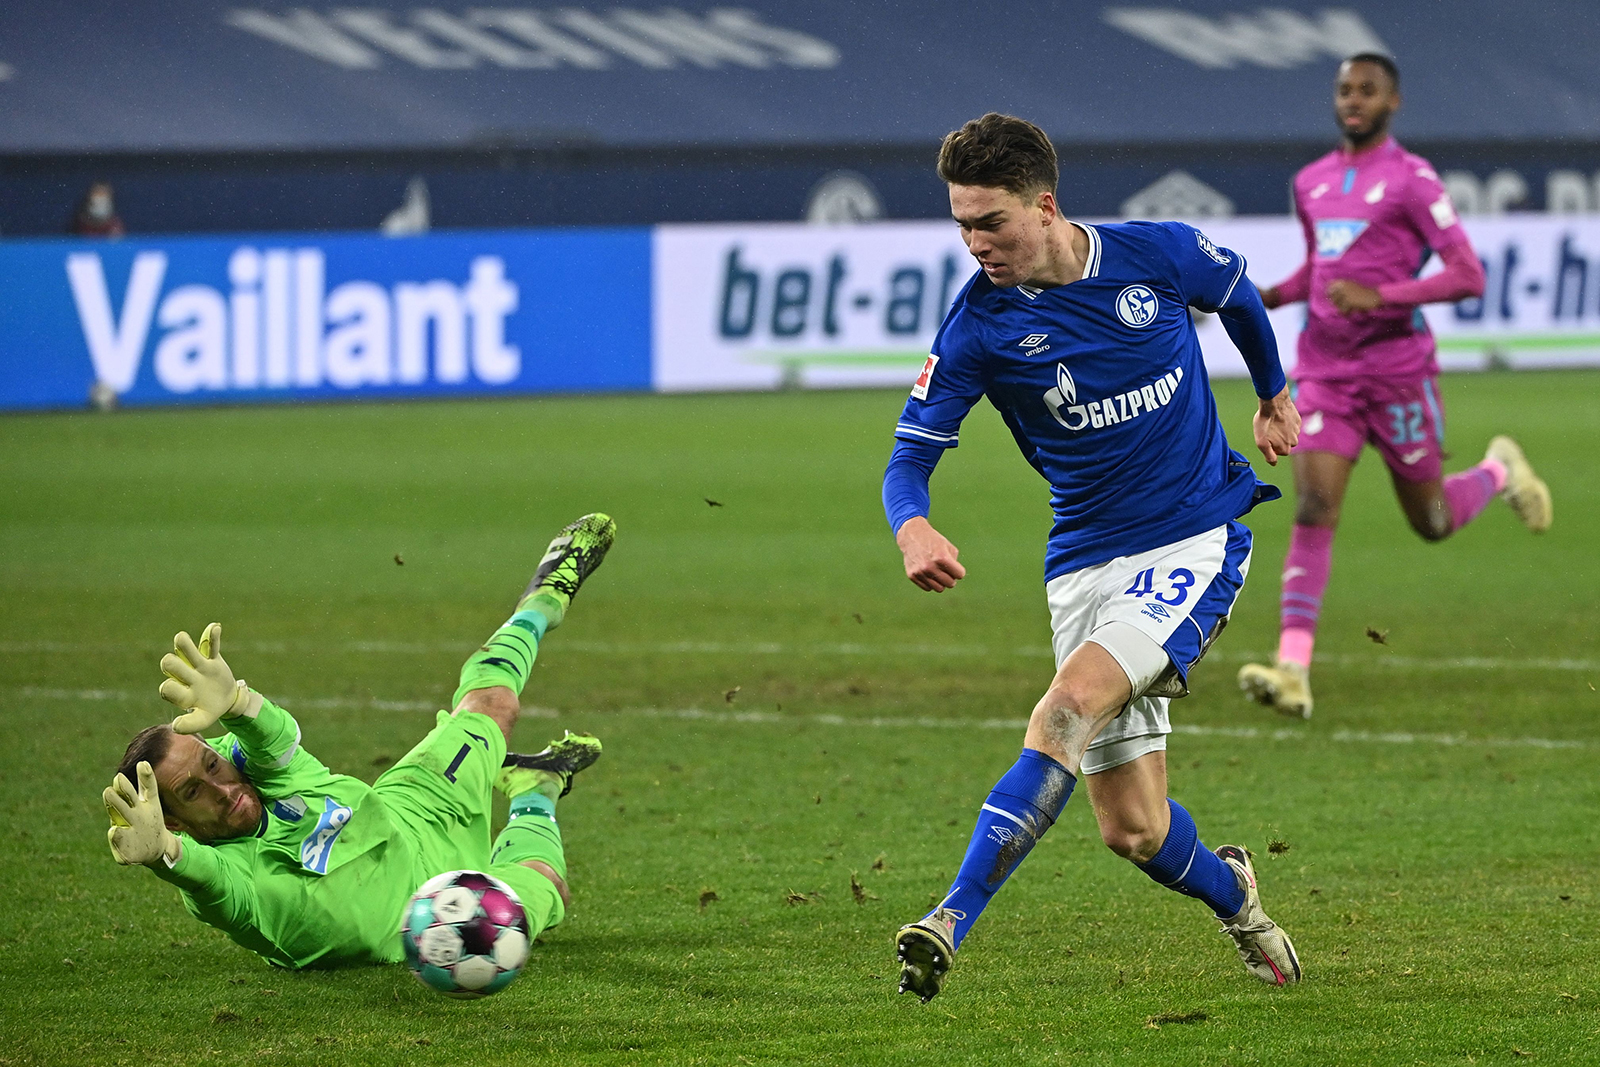 After 30 league games without a win, Schalke stops the rot with 4-0 victory